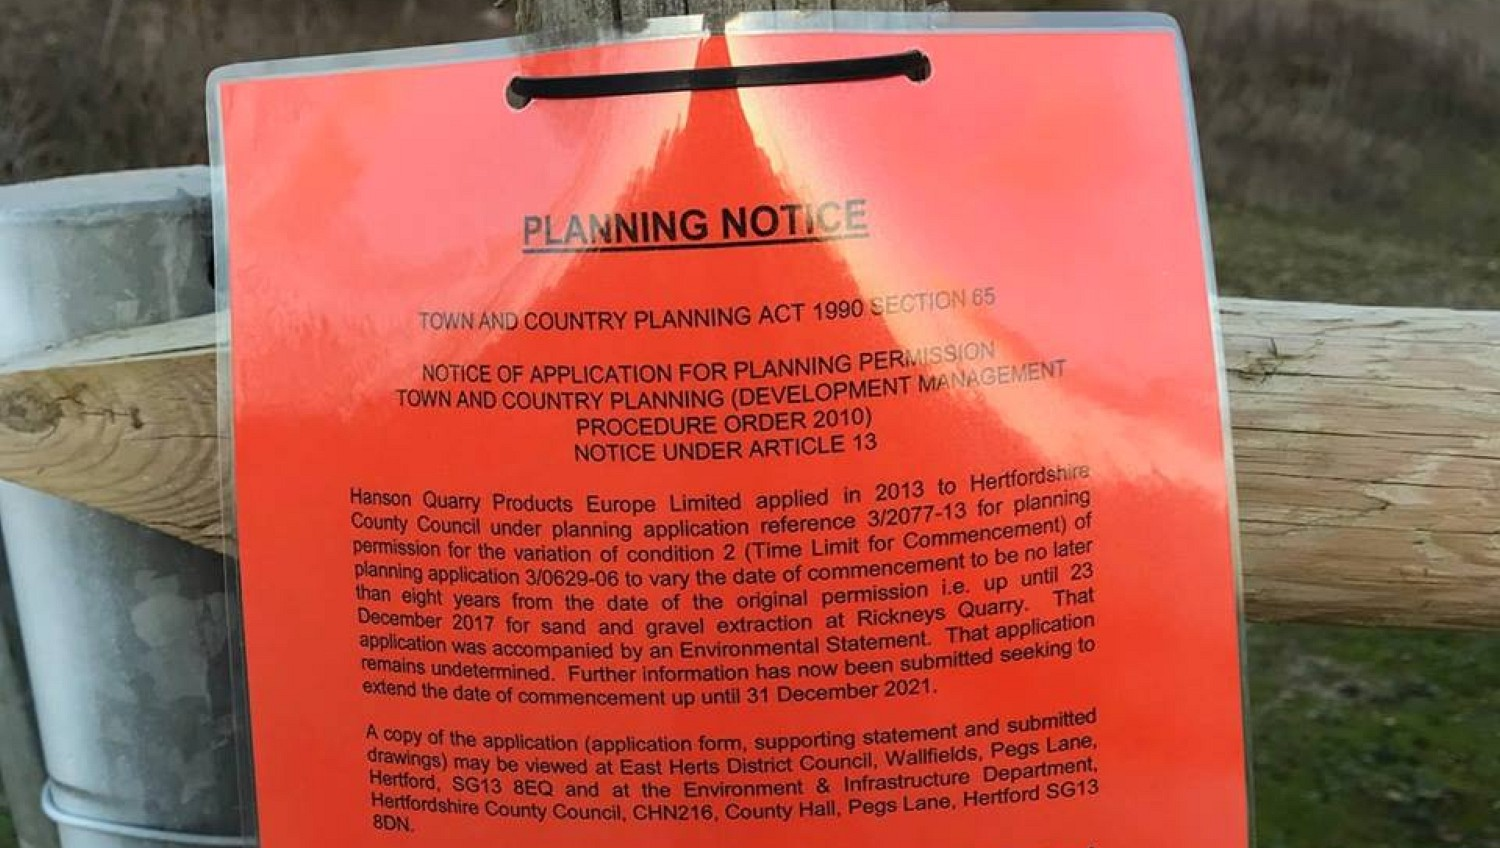 Laminated notice attached to wooden post